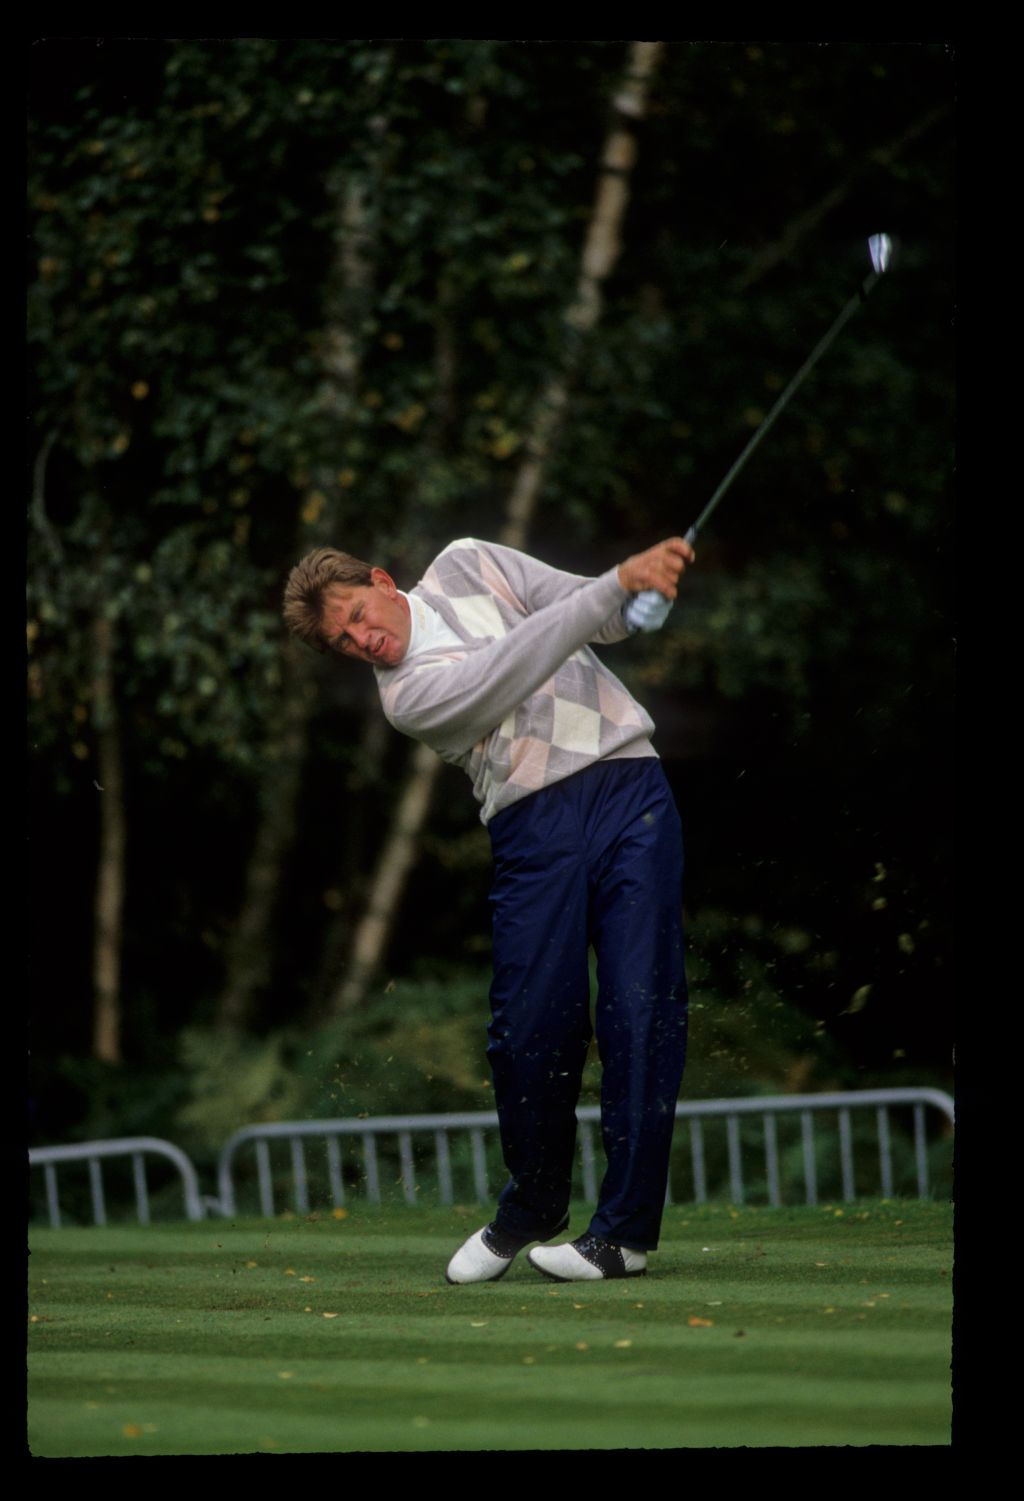 Nick Price powering through the ball on the tee during the 1991 Toyota World Matchplay